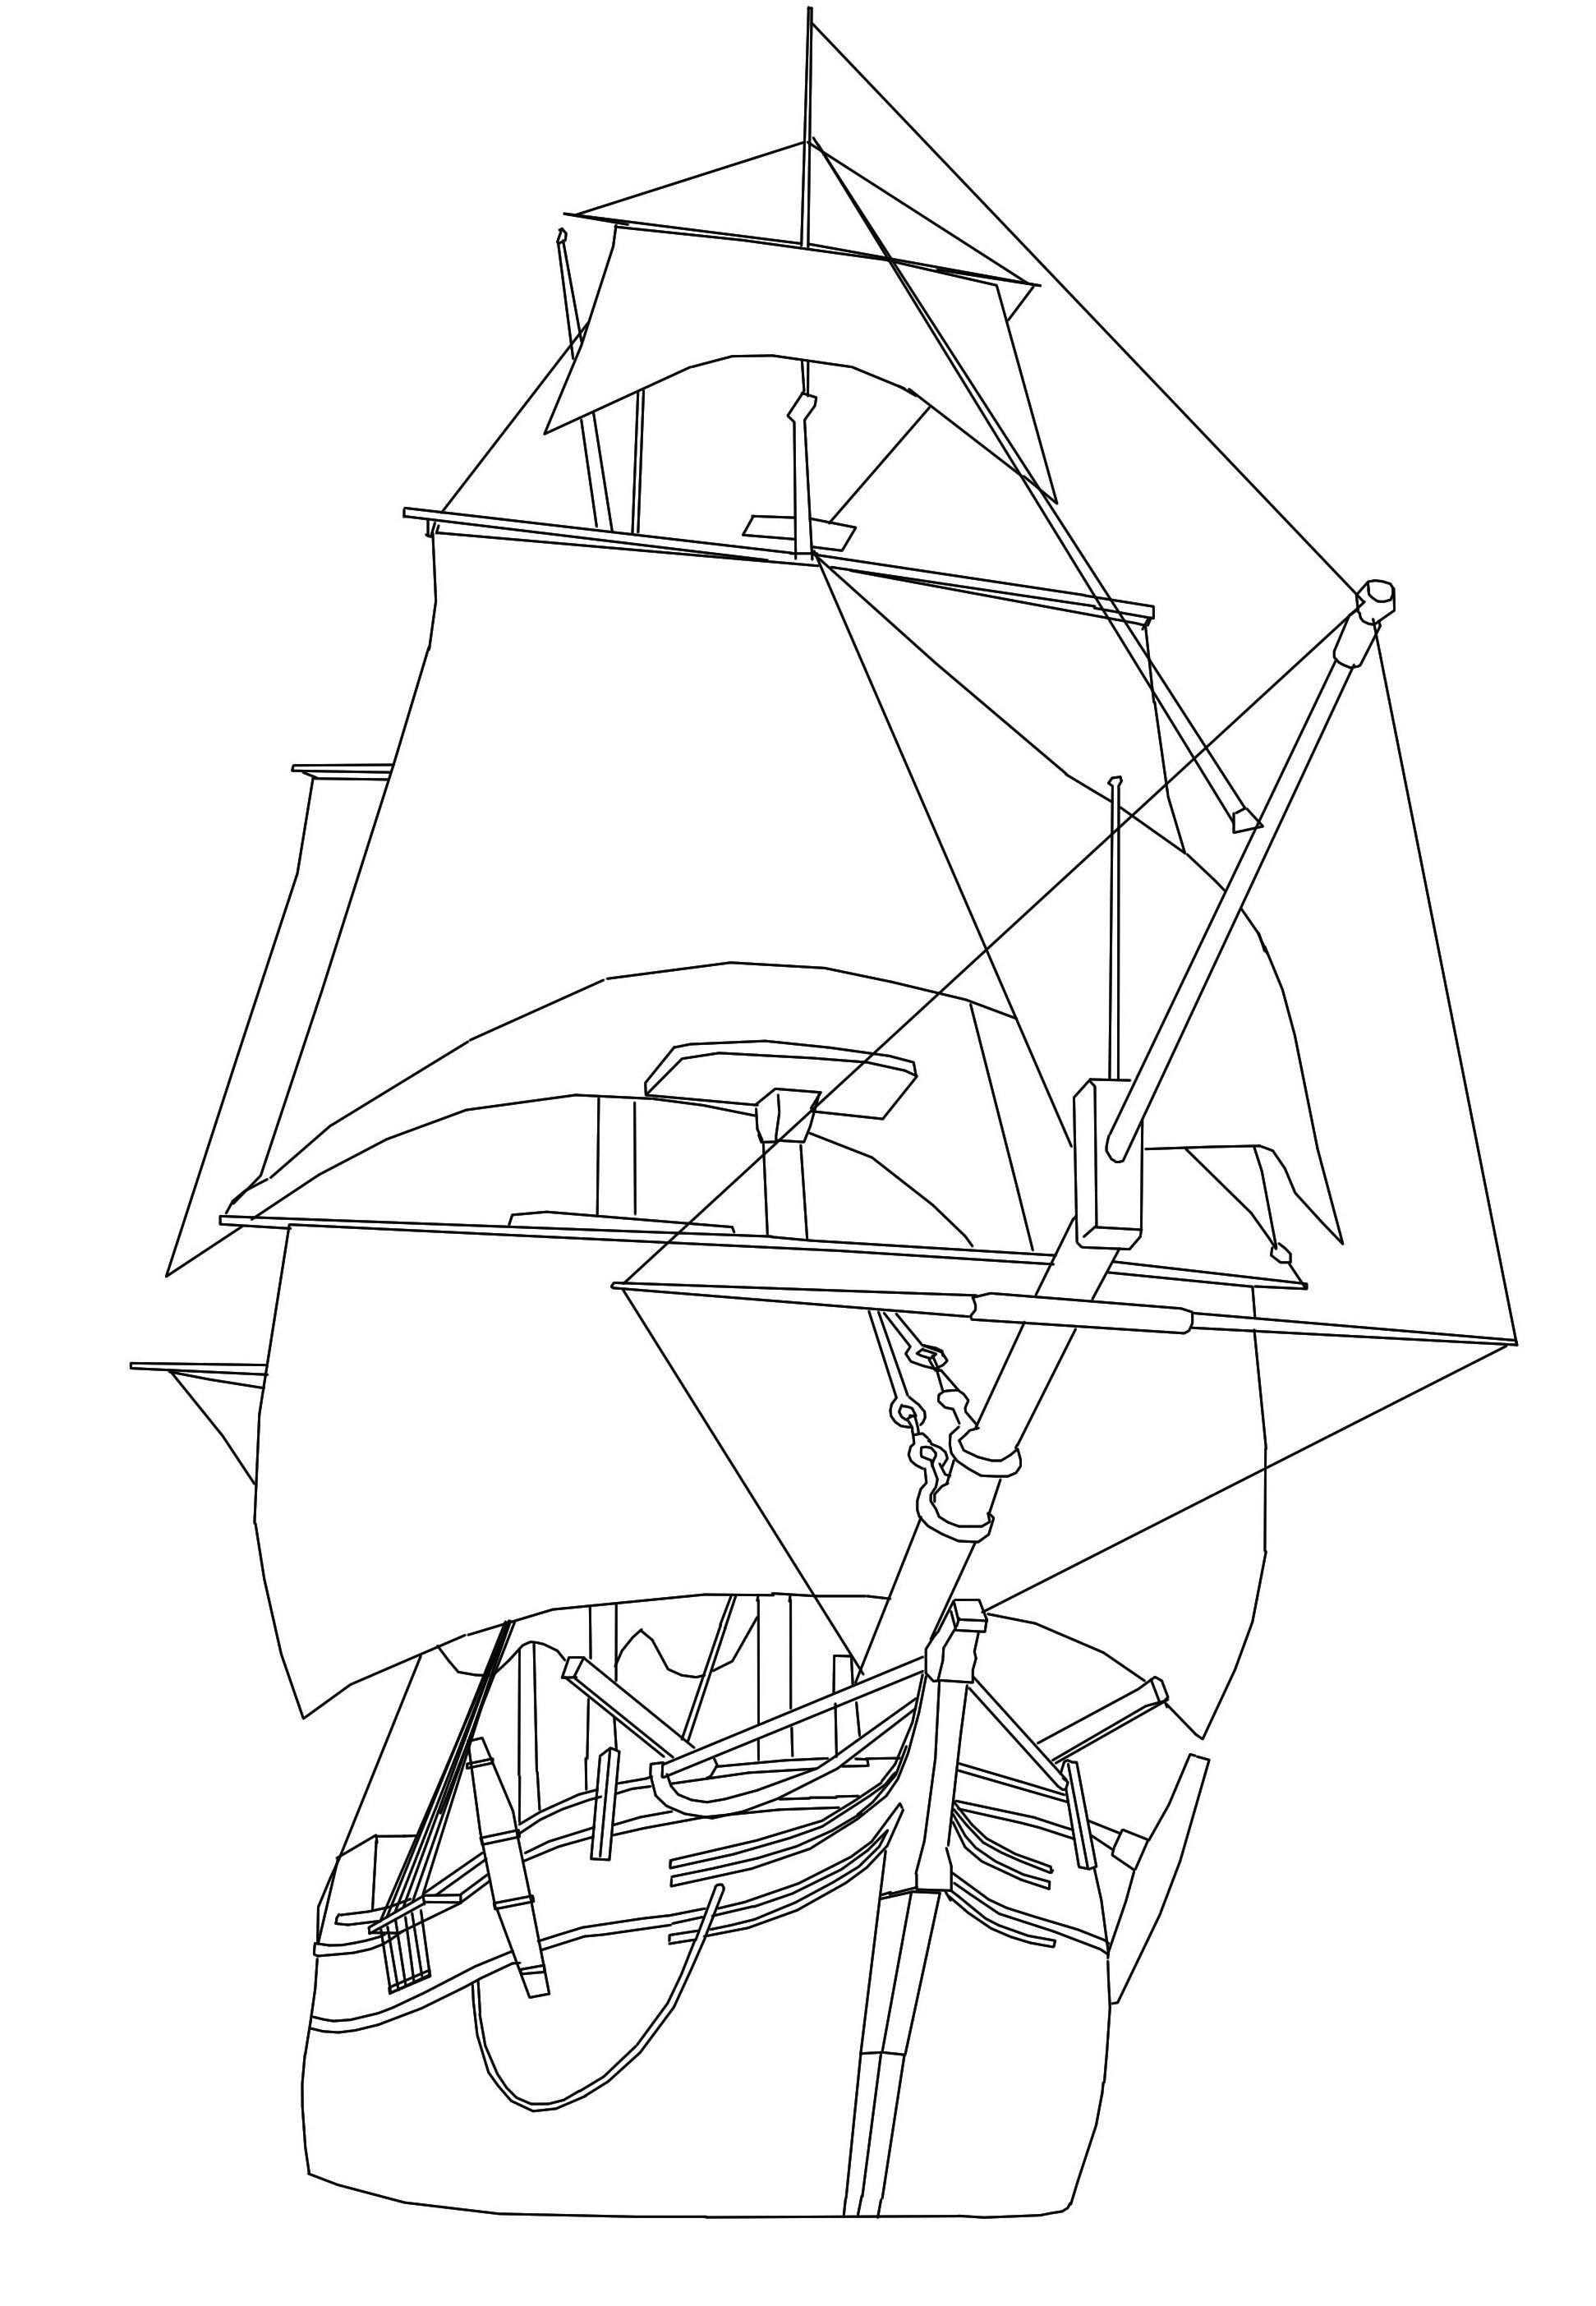 1943x2807 More Line Drawings For Everyday Andrewkellett94